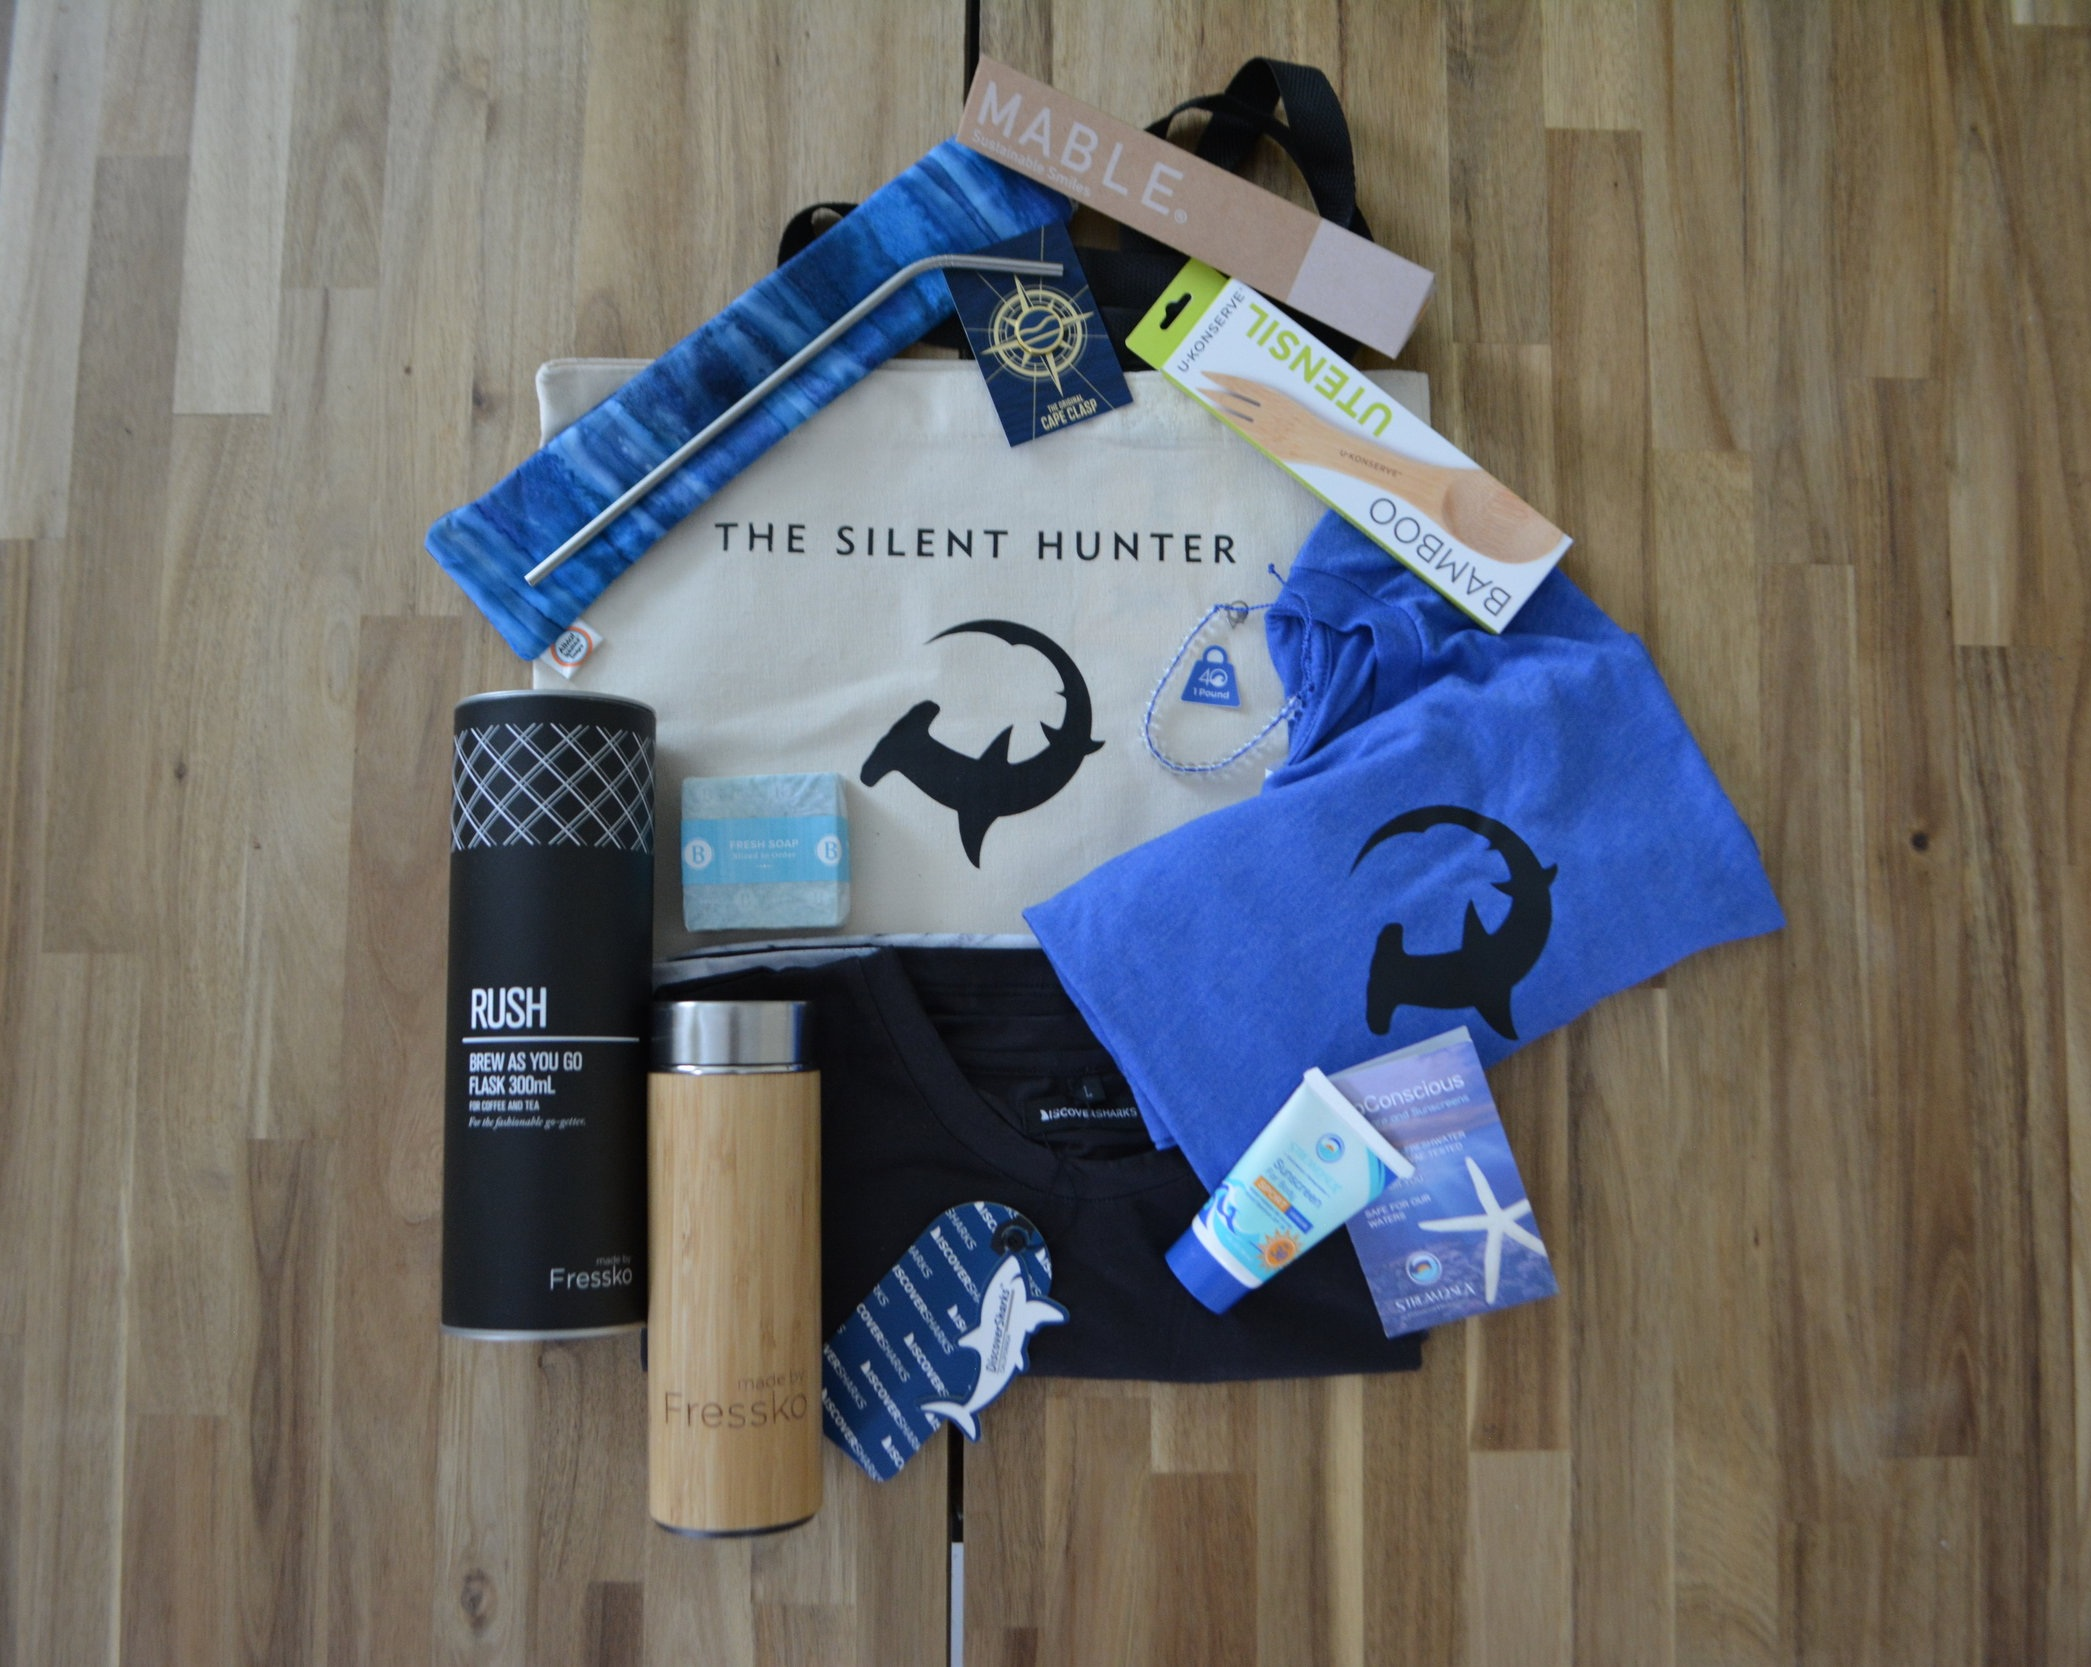 The expedition ecofriendly goodie bag